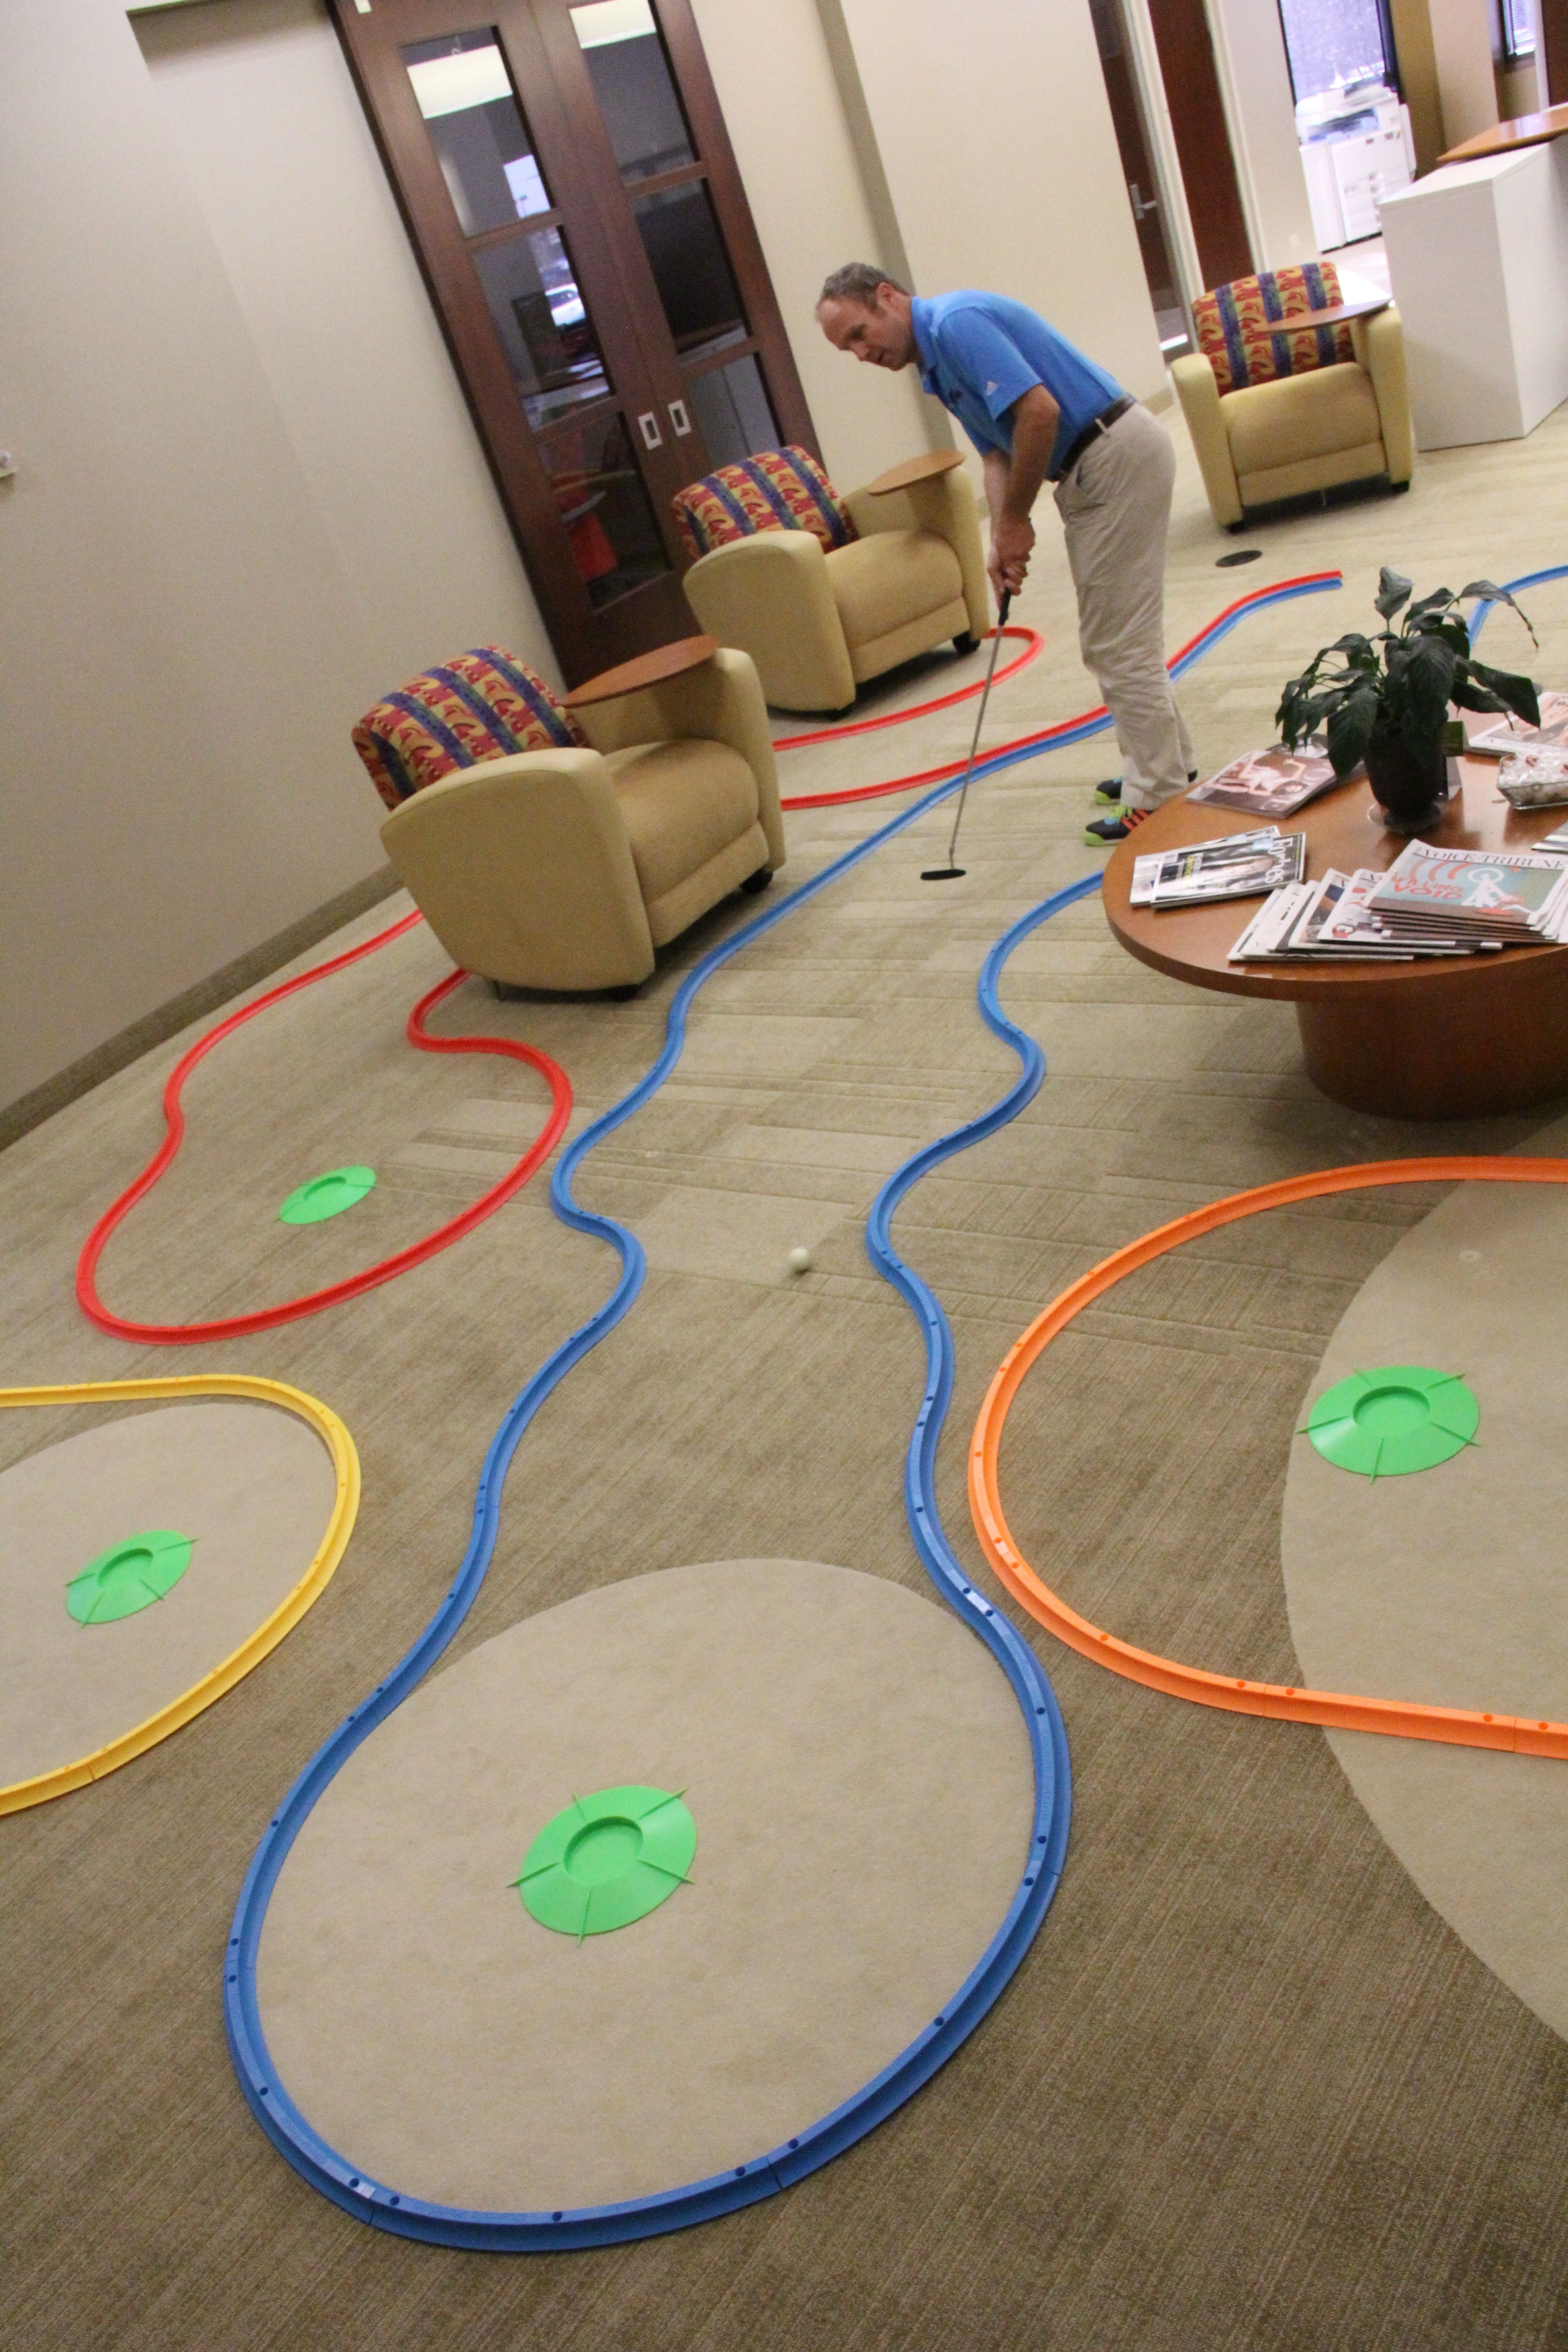 This is a sweet office golf set up. I can't wait to see it